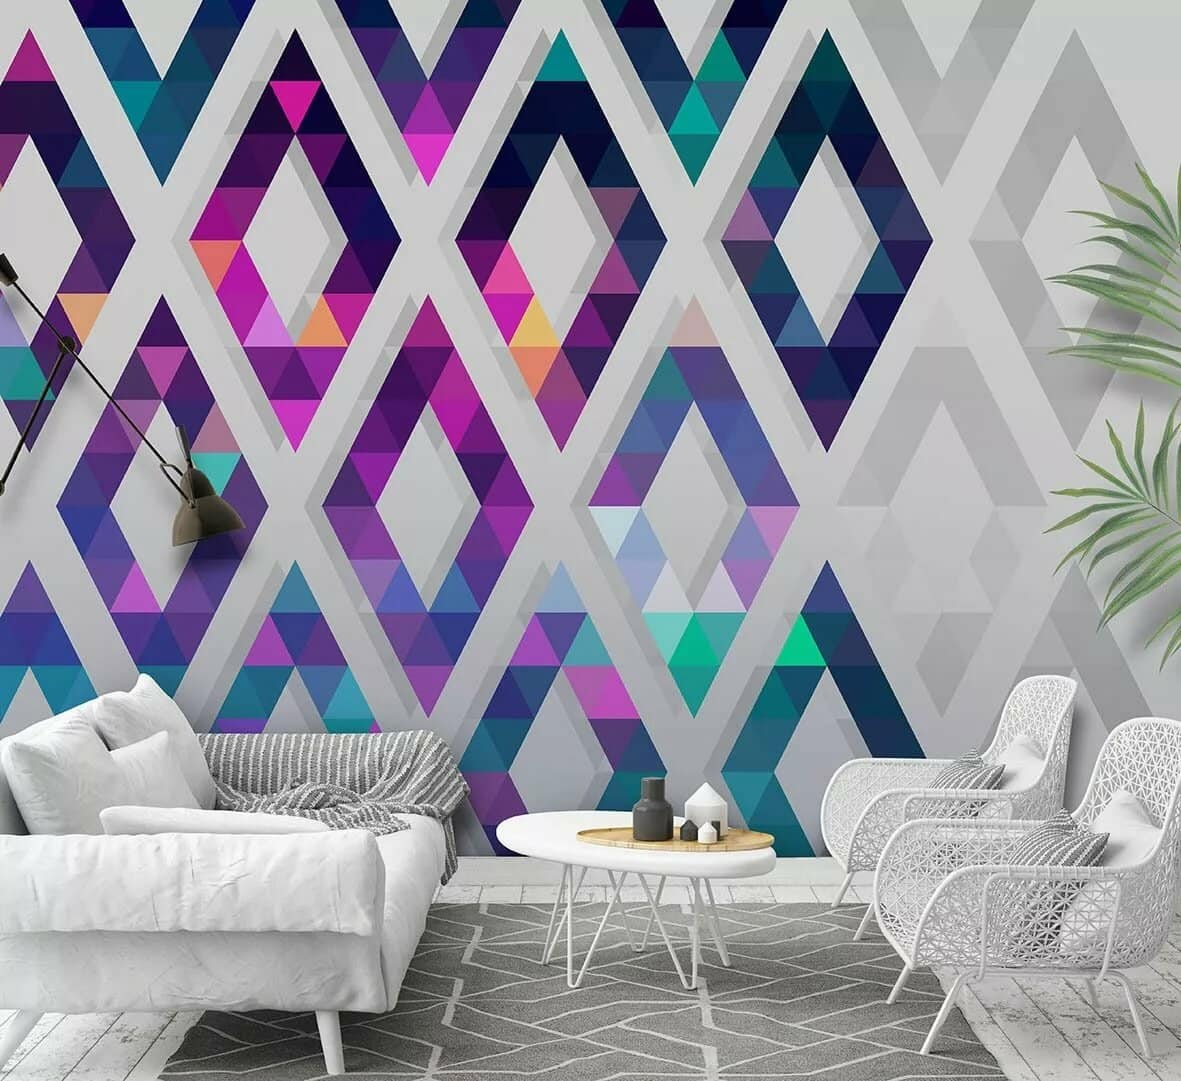 Wallpaper Design Ideas 2020 to Make Interior Elegant. Stylish colorful rhombs